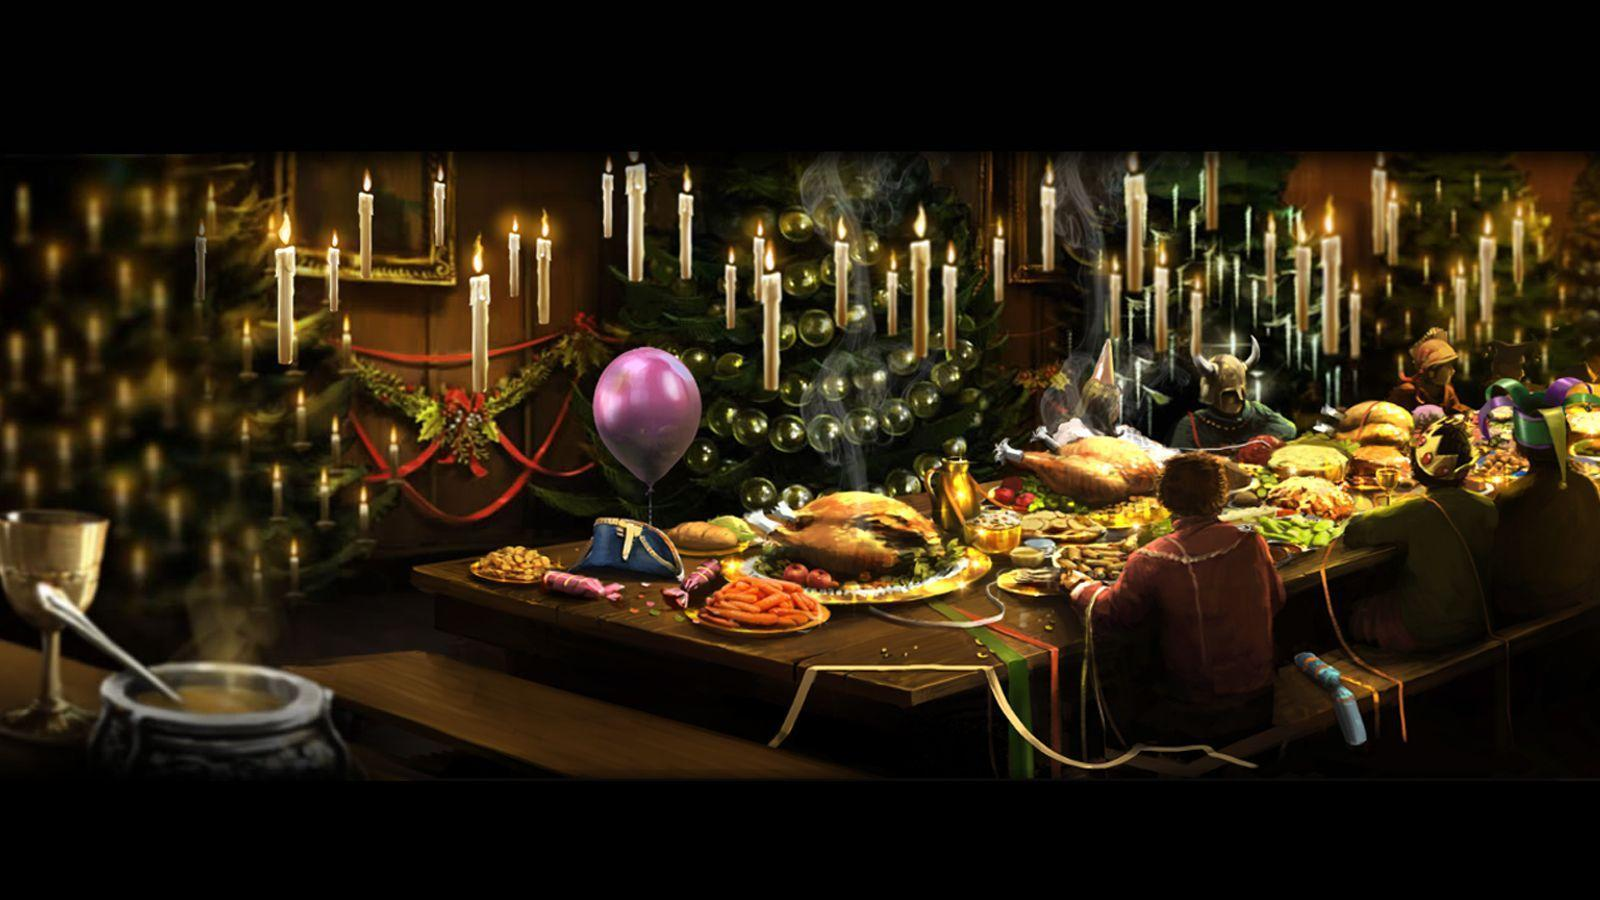 Wonderful Wallpaper Harry Potter Christmas - wp1863594  Perfect Image Reference_829150.jpg